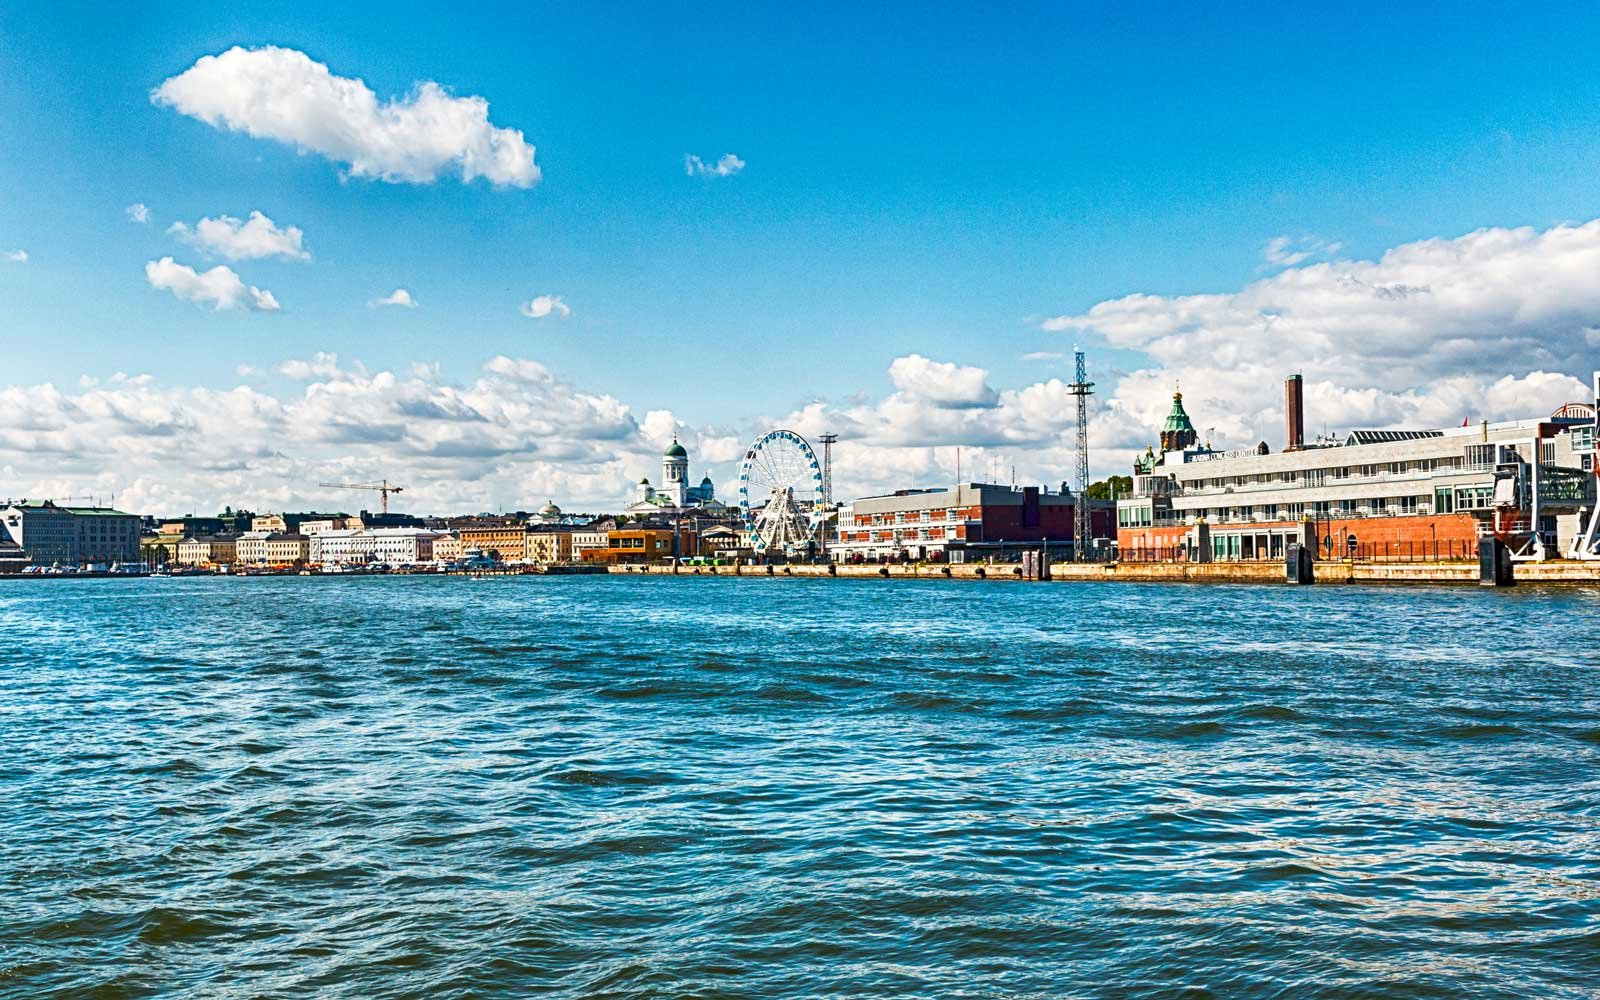 Cityscape and skyline of Helsinki, capital of Republic of Finland.